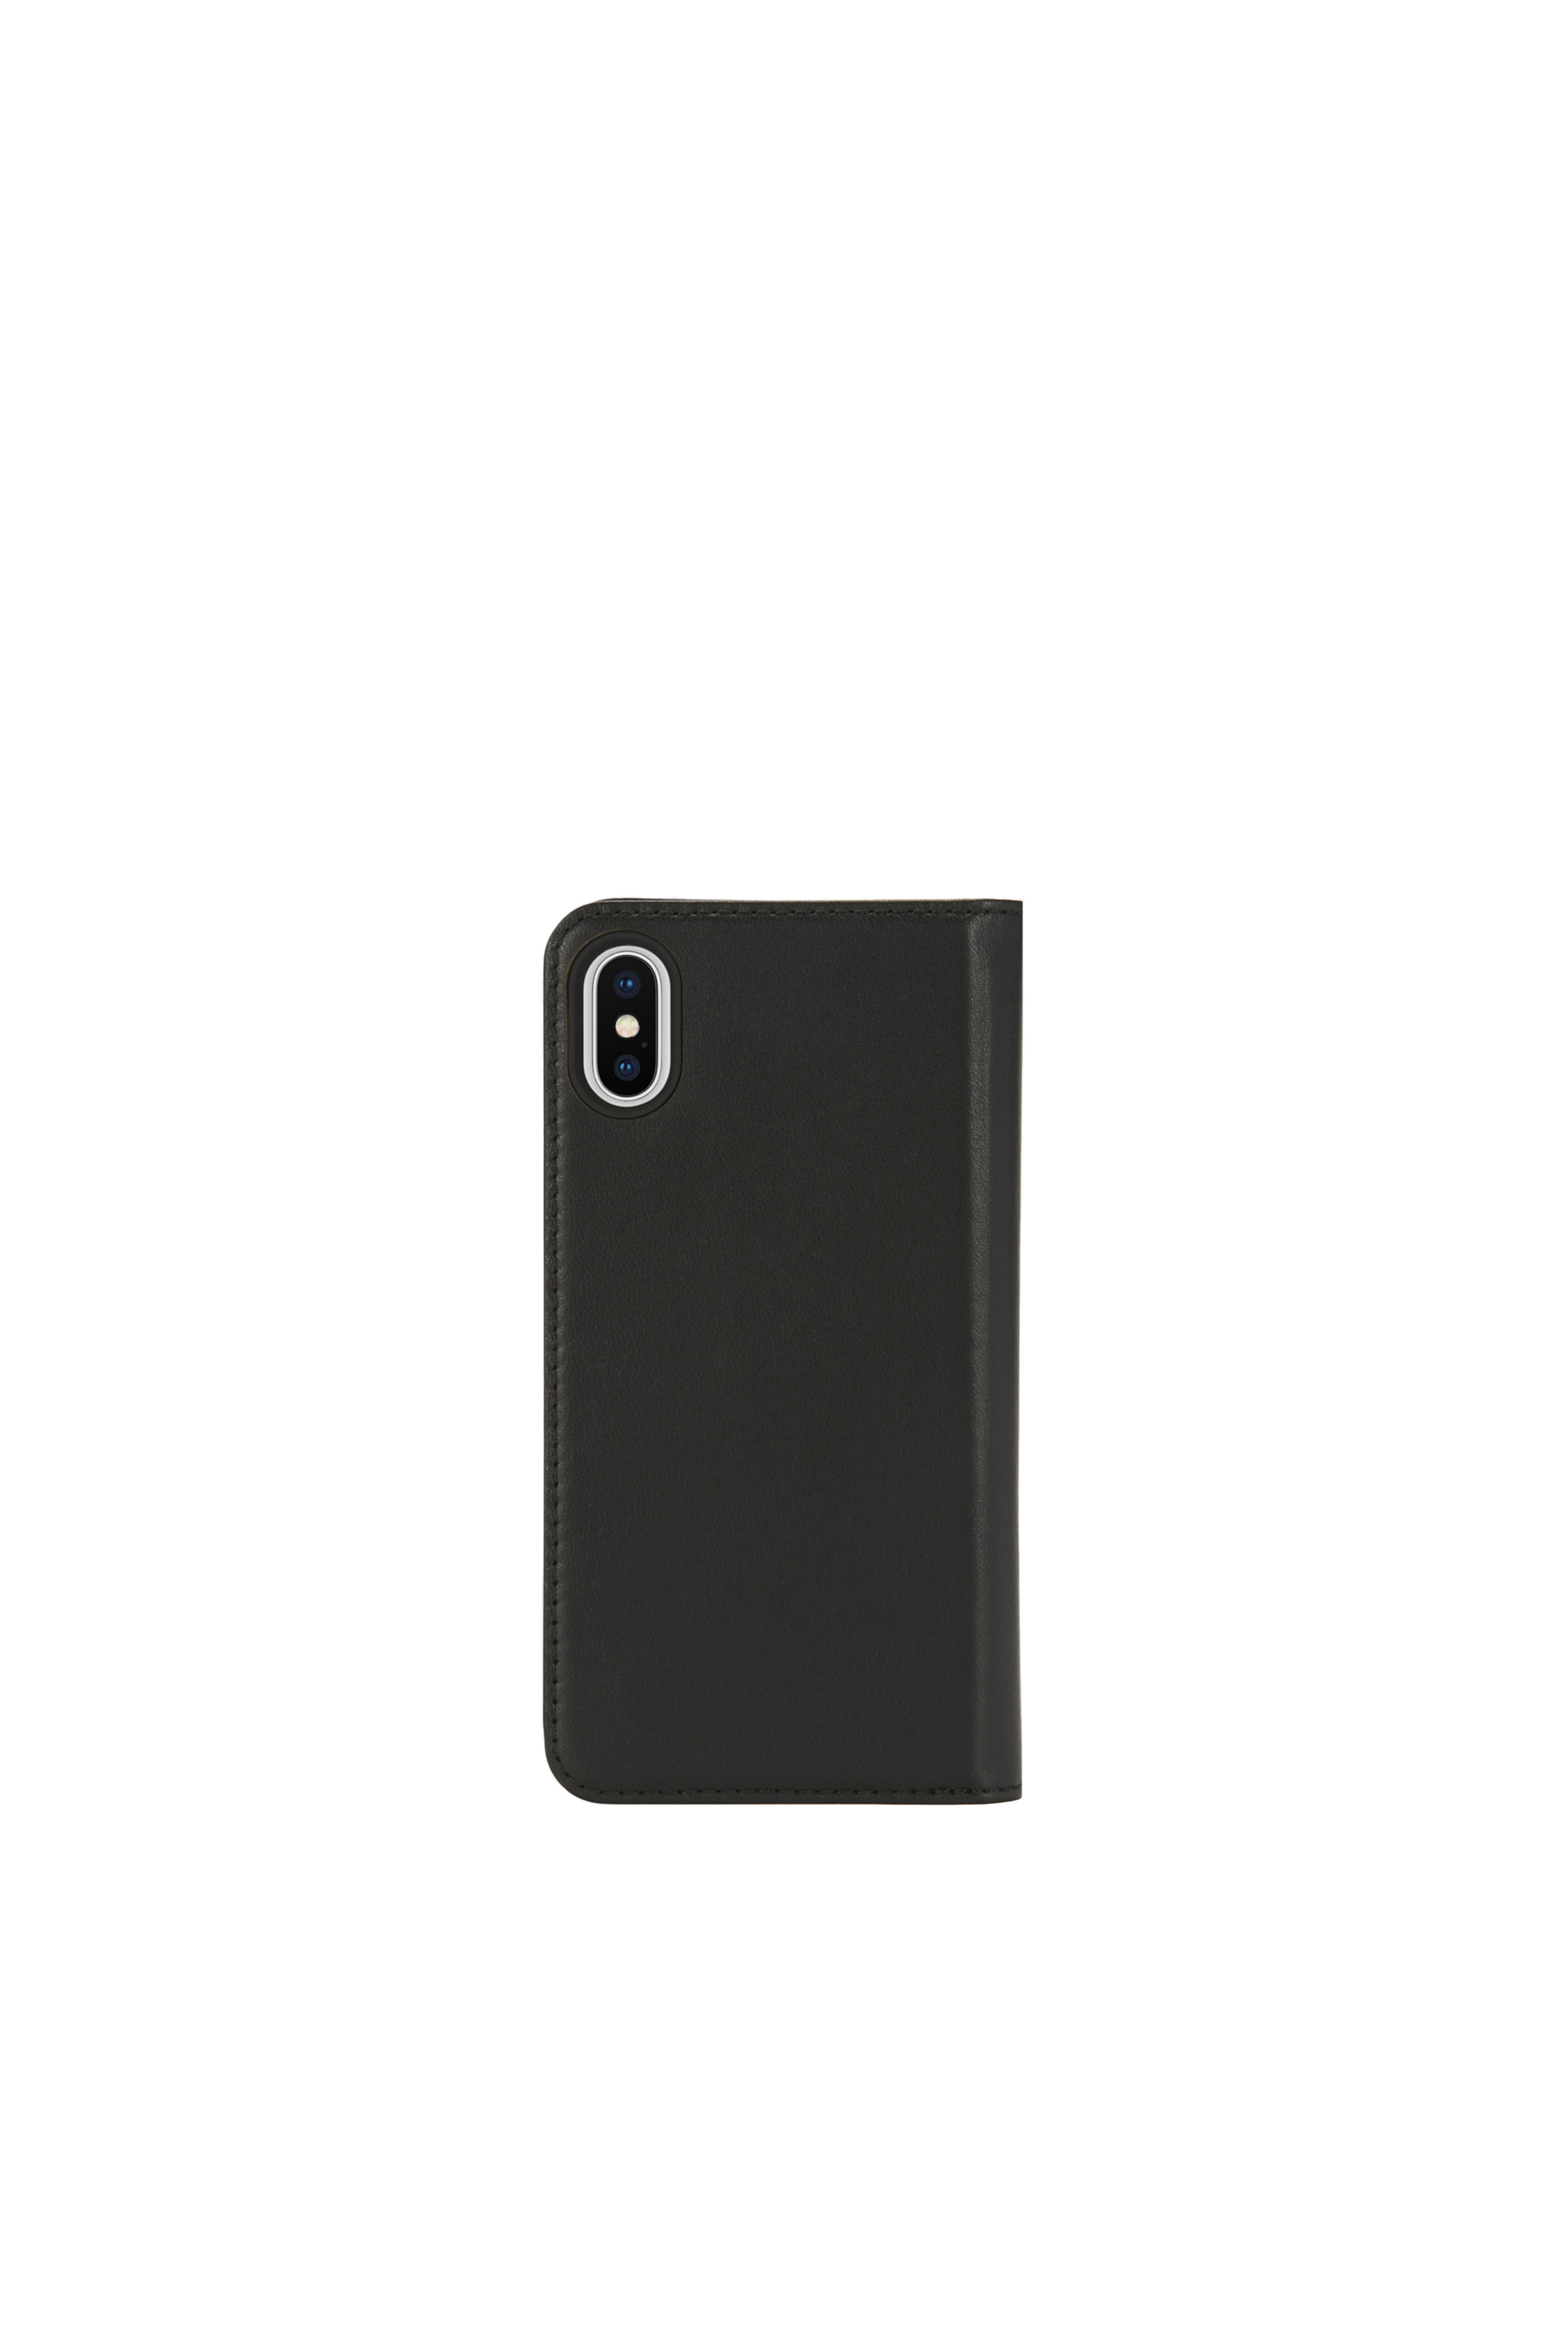 Diesel - SLIM LEATHER FOLIO IPHONE X,  - Flip covers - Image 4